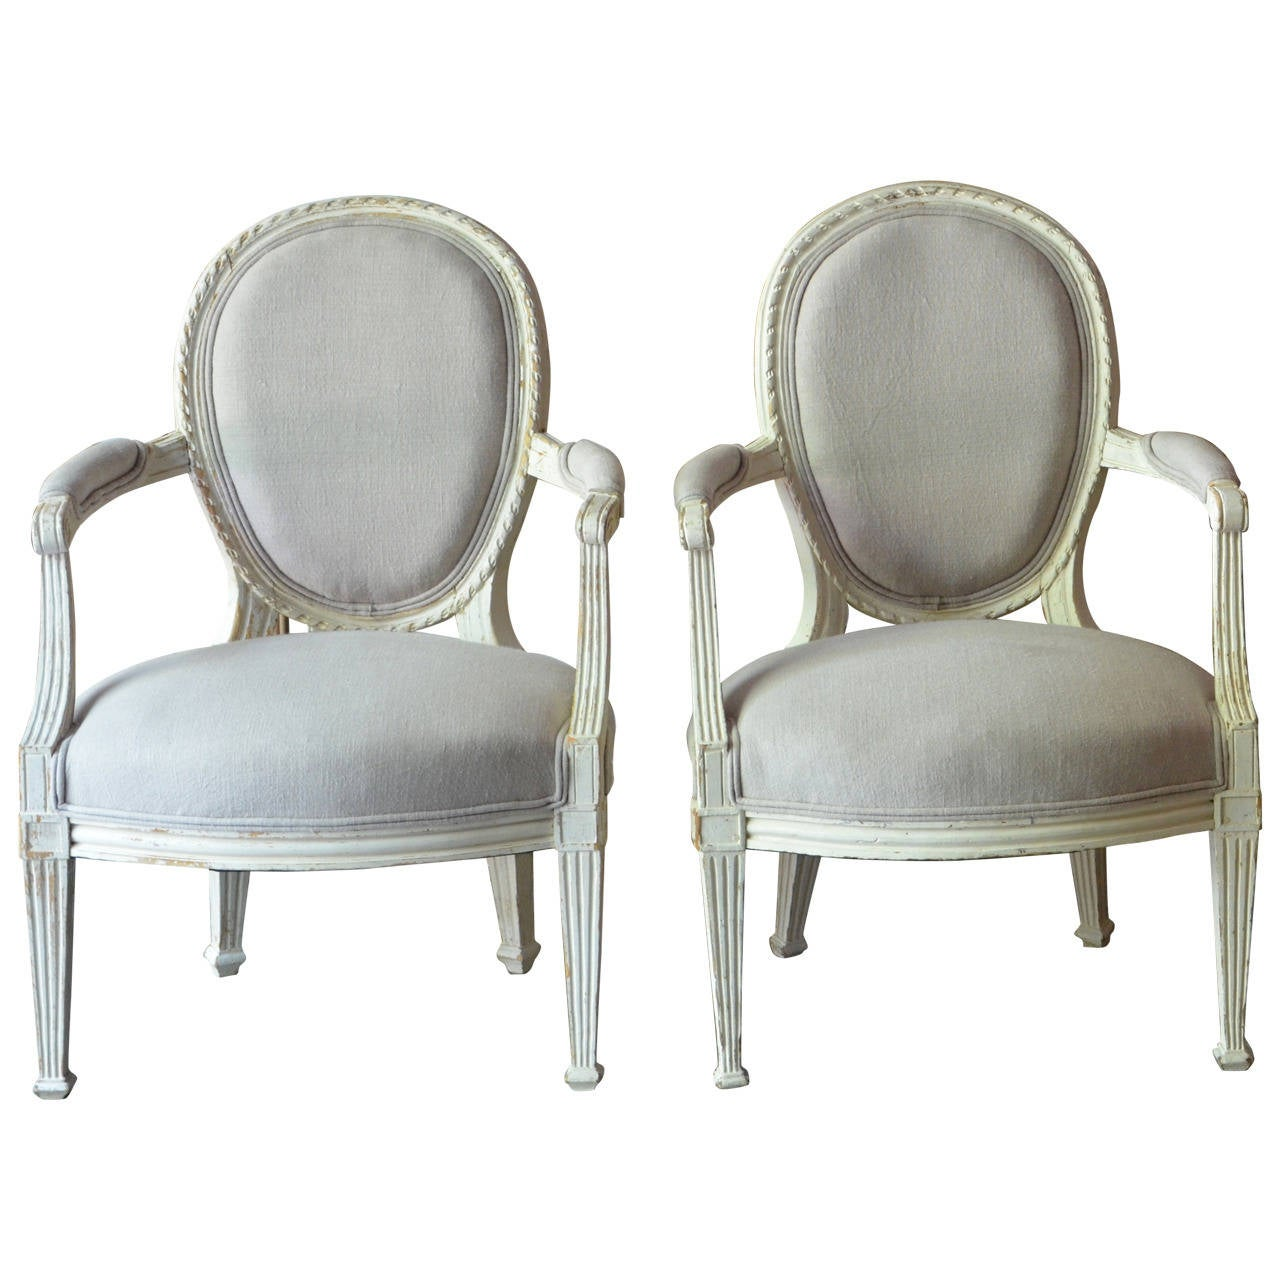 Pair of 19th Century Louis XV Style Painted Cabriolet Armchairs